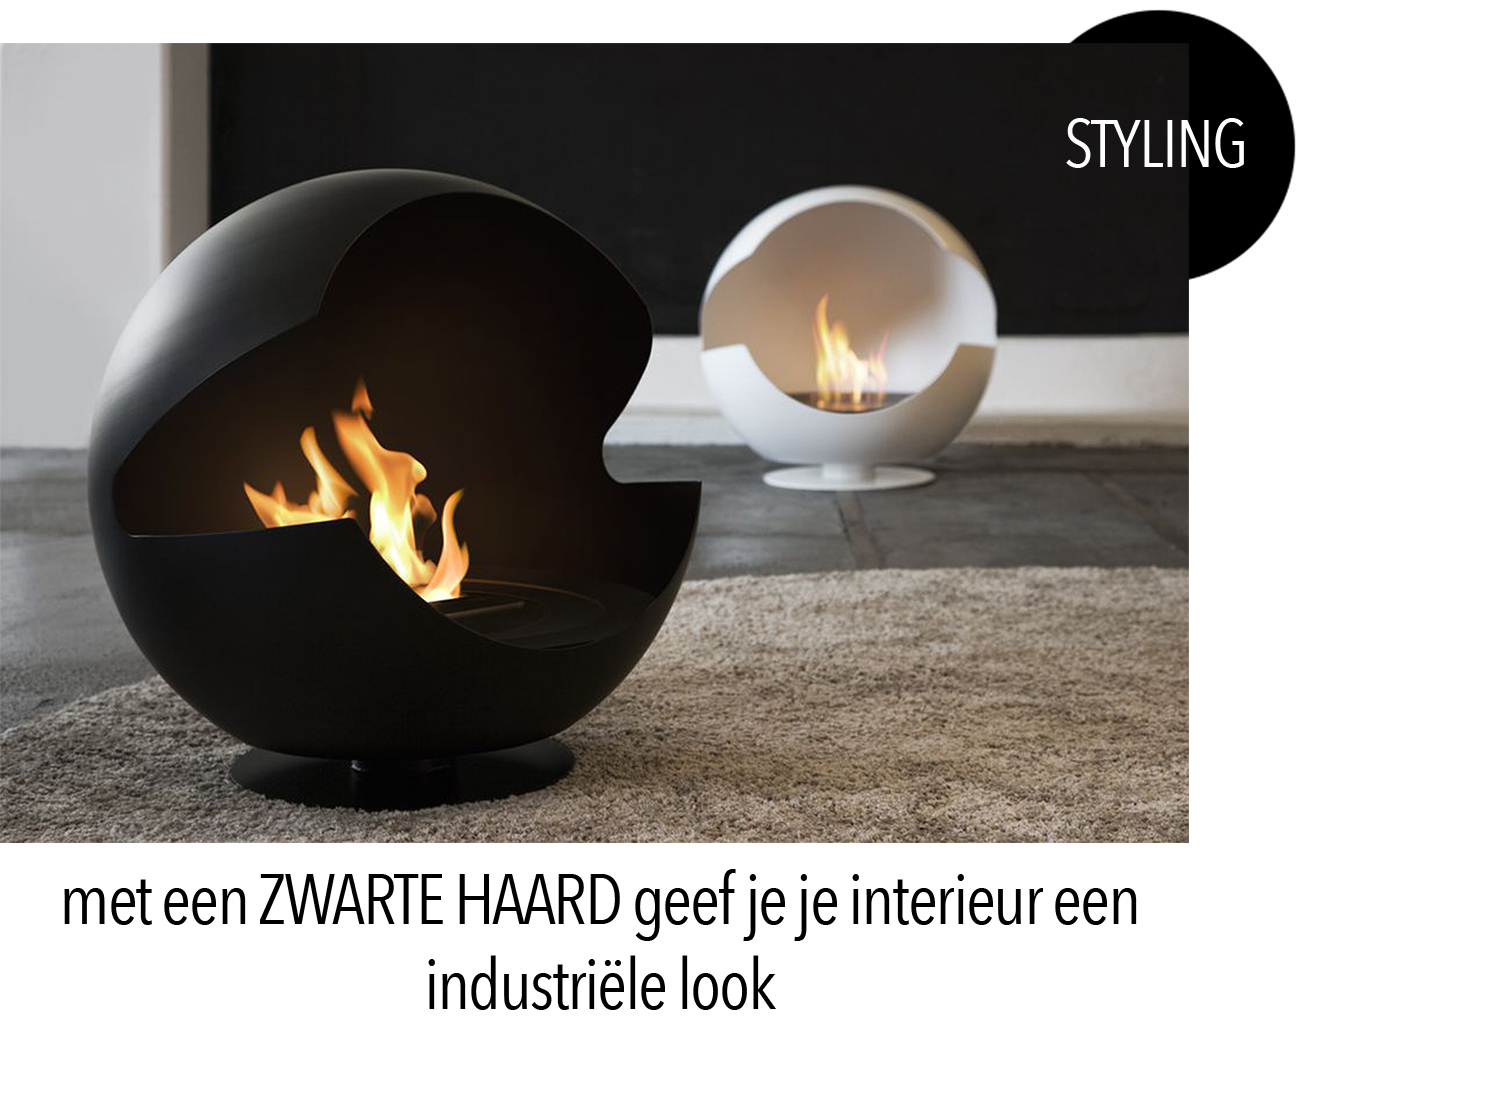 open-haard-haarden-zwart-industrieel-interieur-styling-tips-ideeen